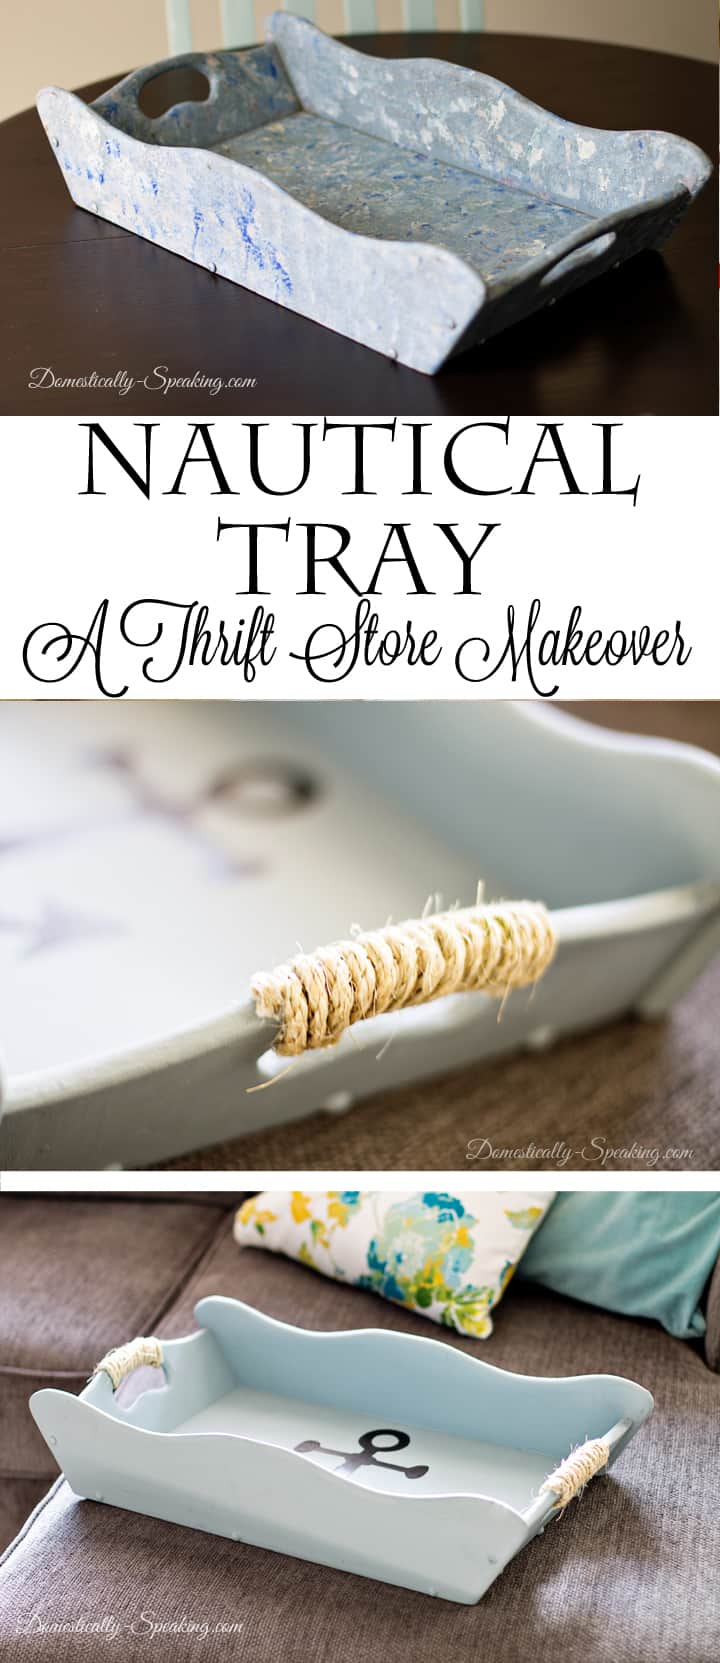 Nautical Tray a Thrift Store Makeover with Rope Detailing